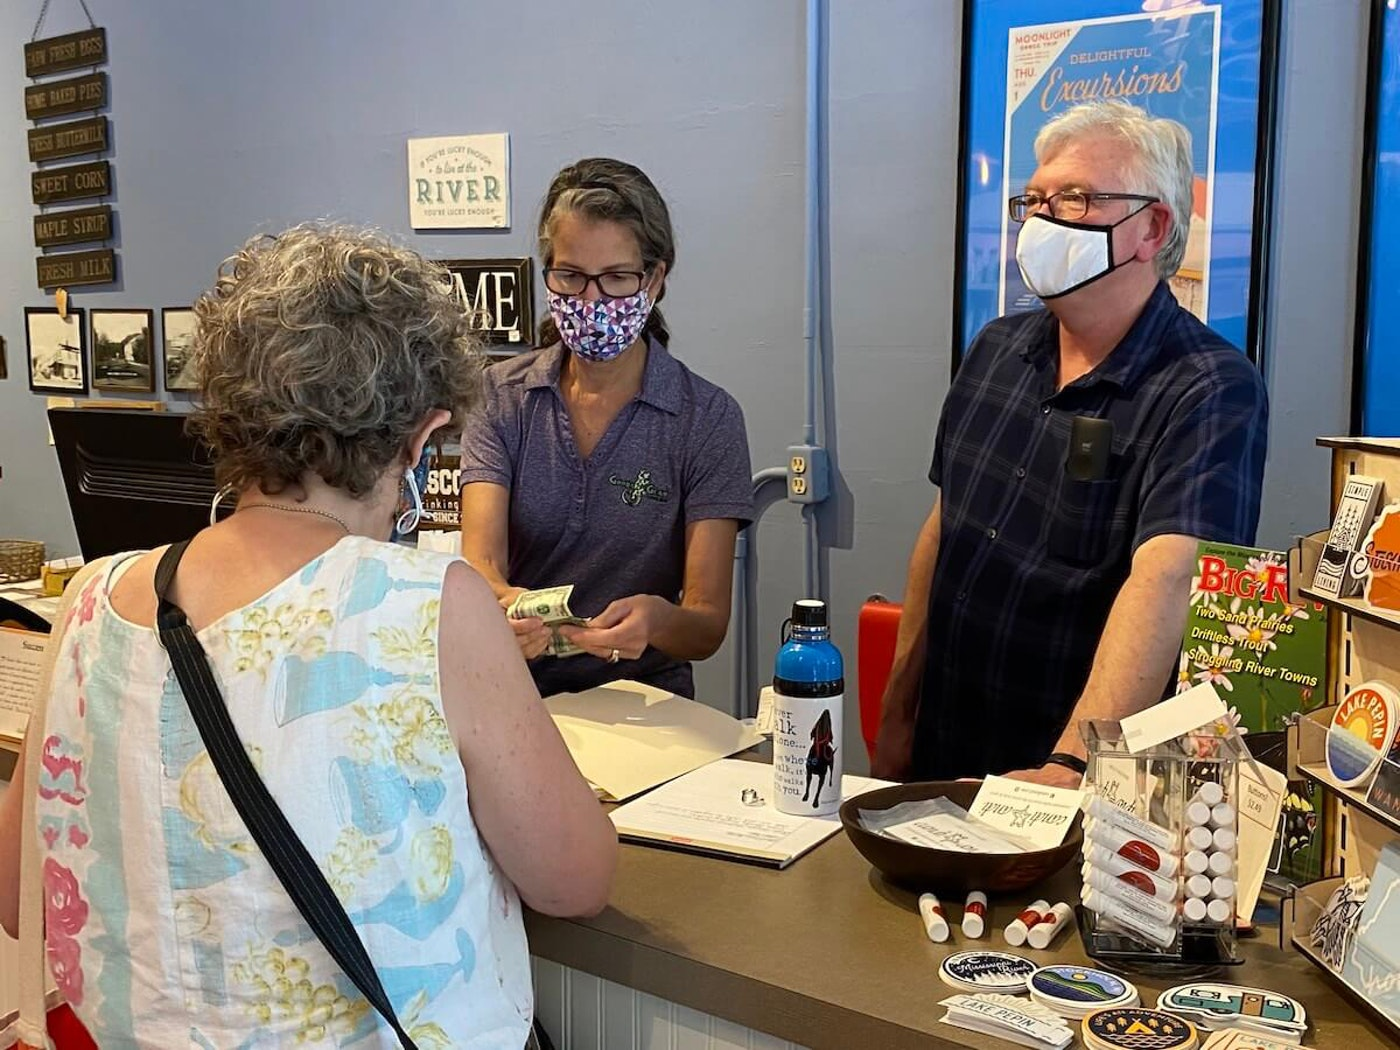 Alan Nugent, right, owner of the Stockholm Pie and General Store, works with a fellow employee and a customer on Aug. 1, the first day of Gov. Tony Evers' order making the wearing of masks in public places in Wisconsin mandatory. Nugent said a handful of people have left his store because they would not wear masks, but most people abide by the regulation. (Photo by Julian Emerson)